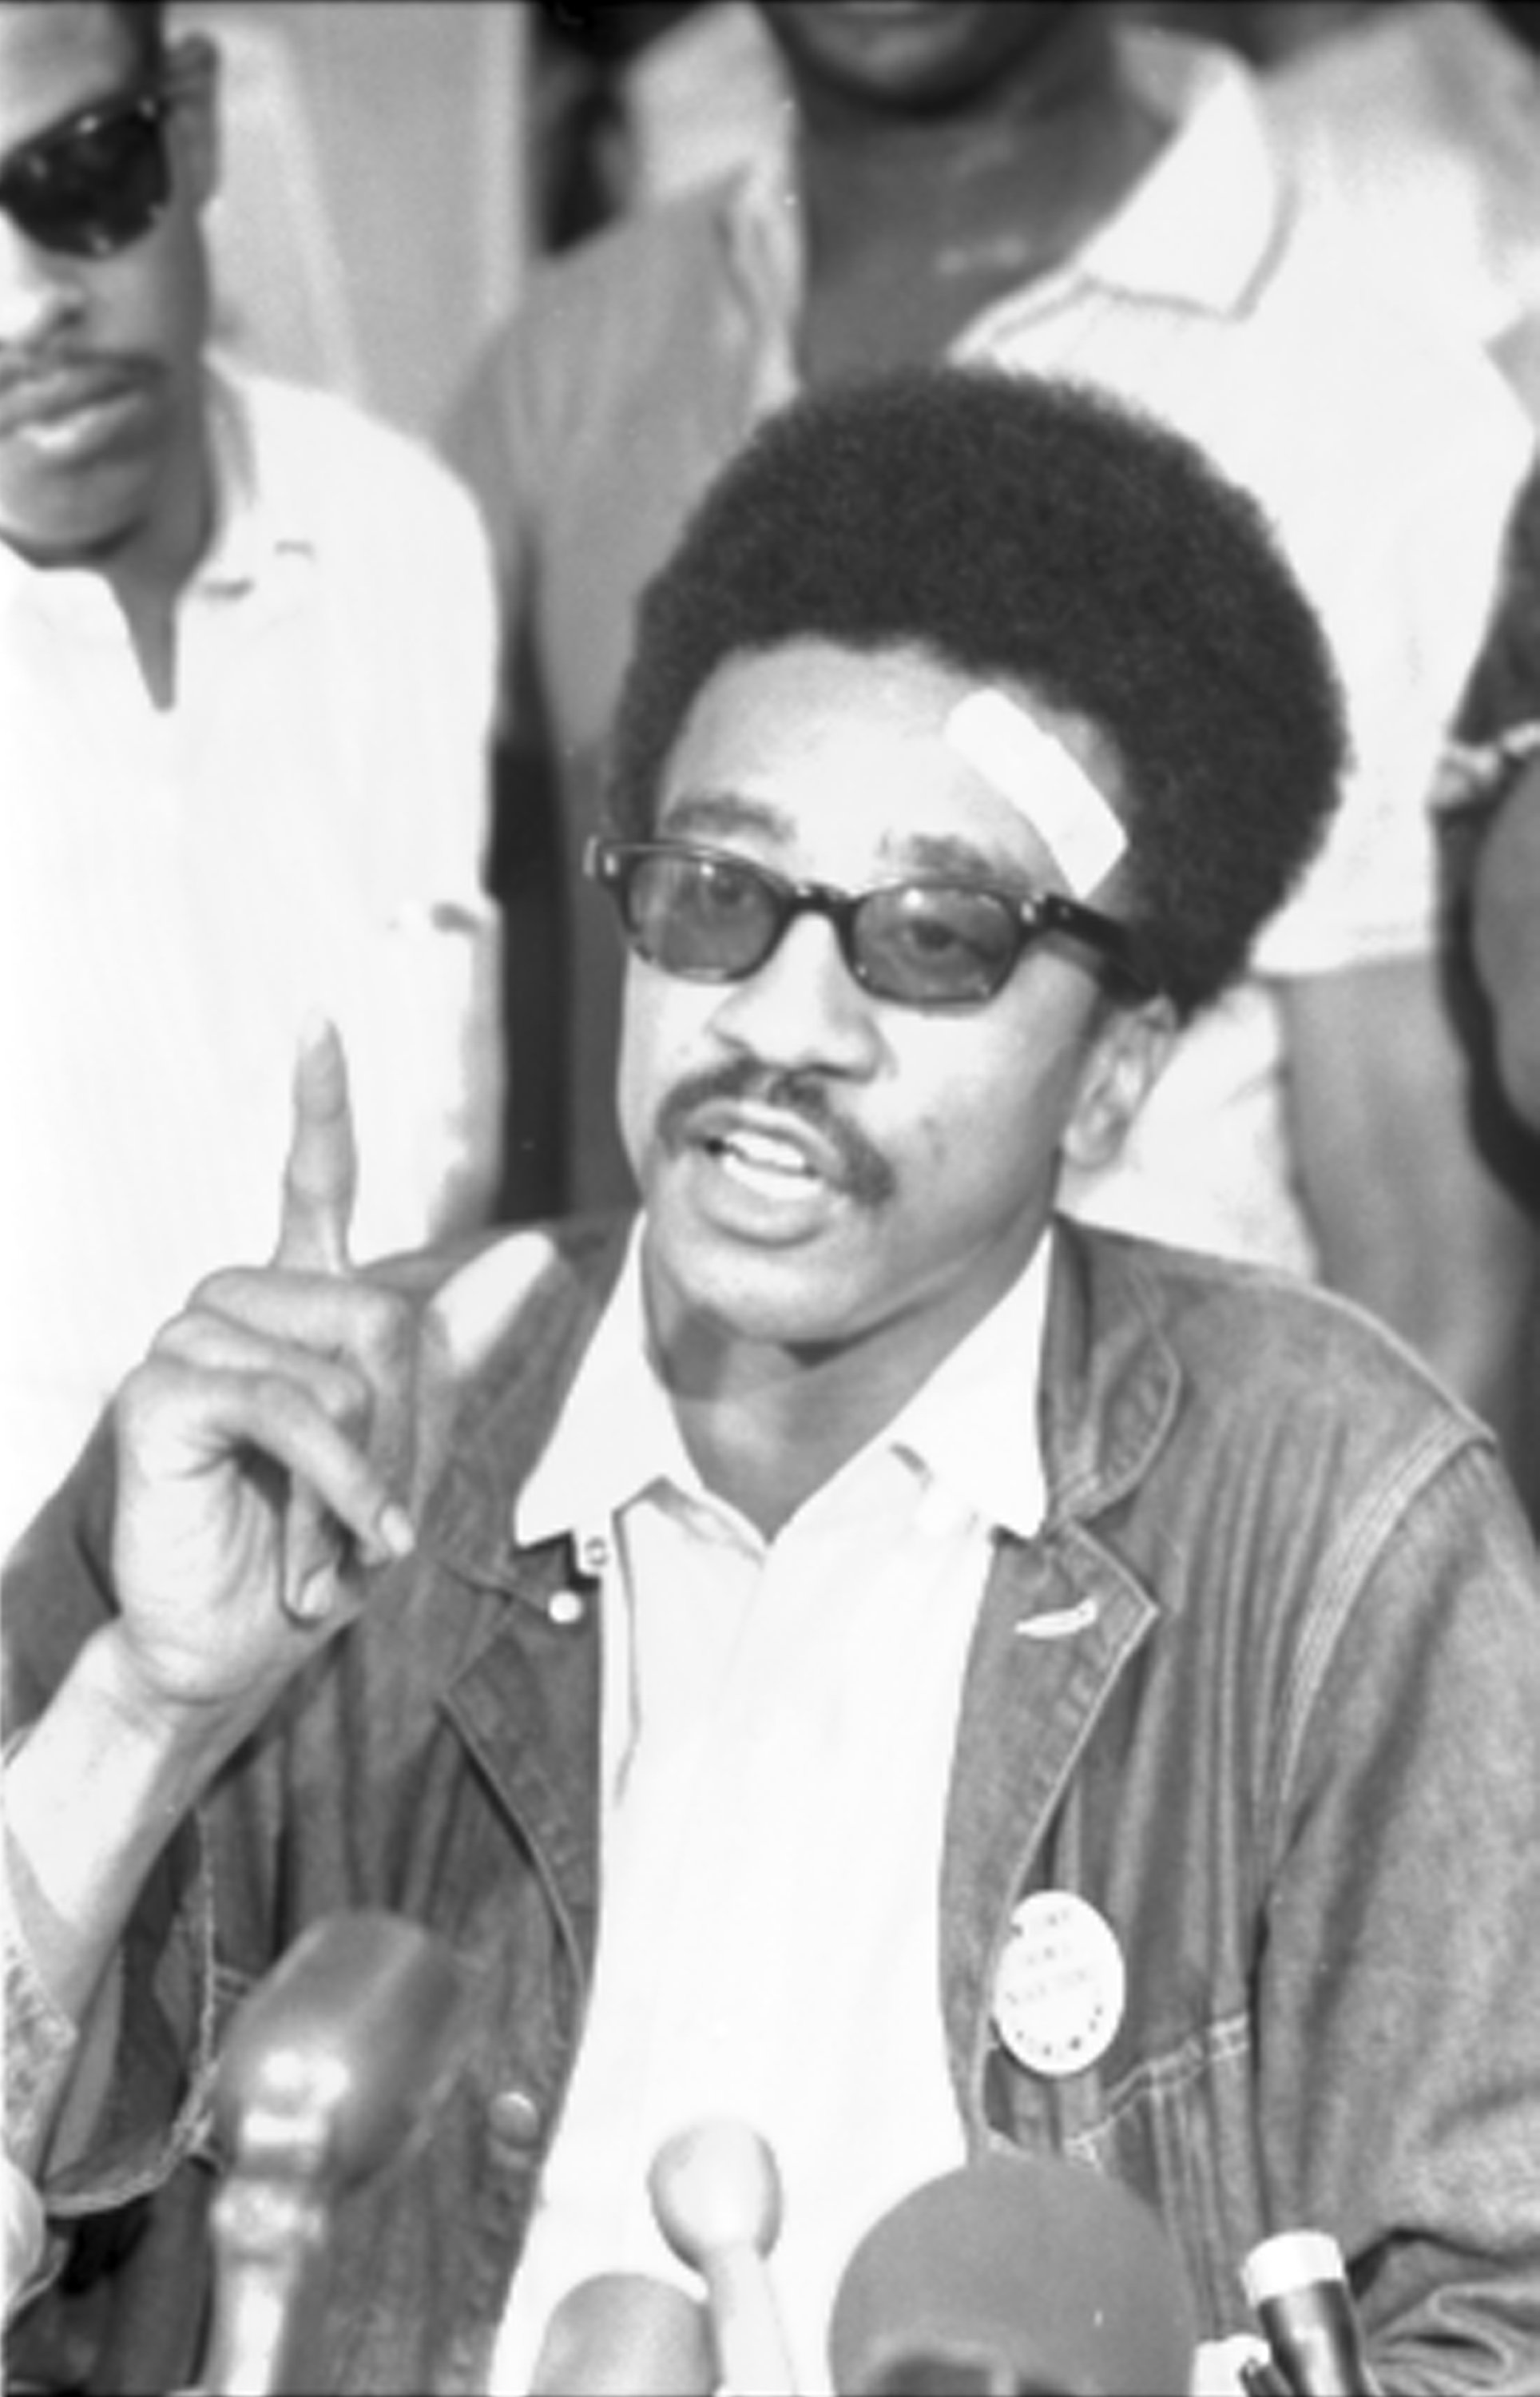 File:H Rap Brown - USNWR.jpg - Wikipedia, the free encyclopedia